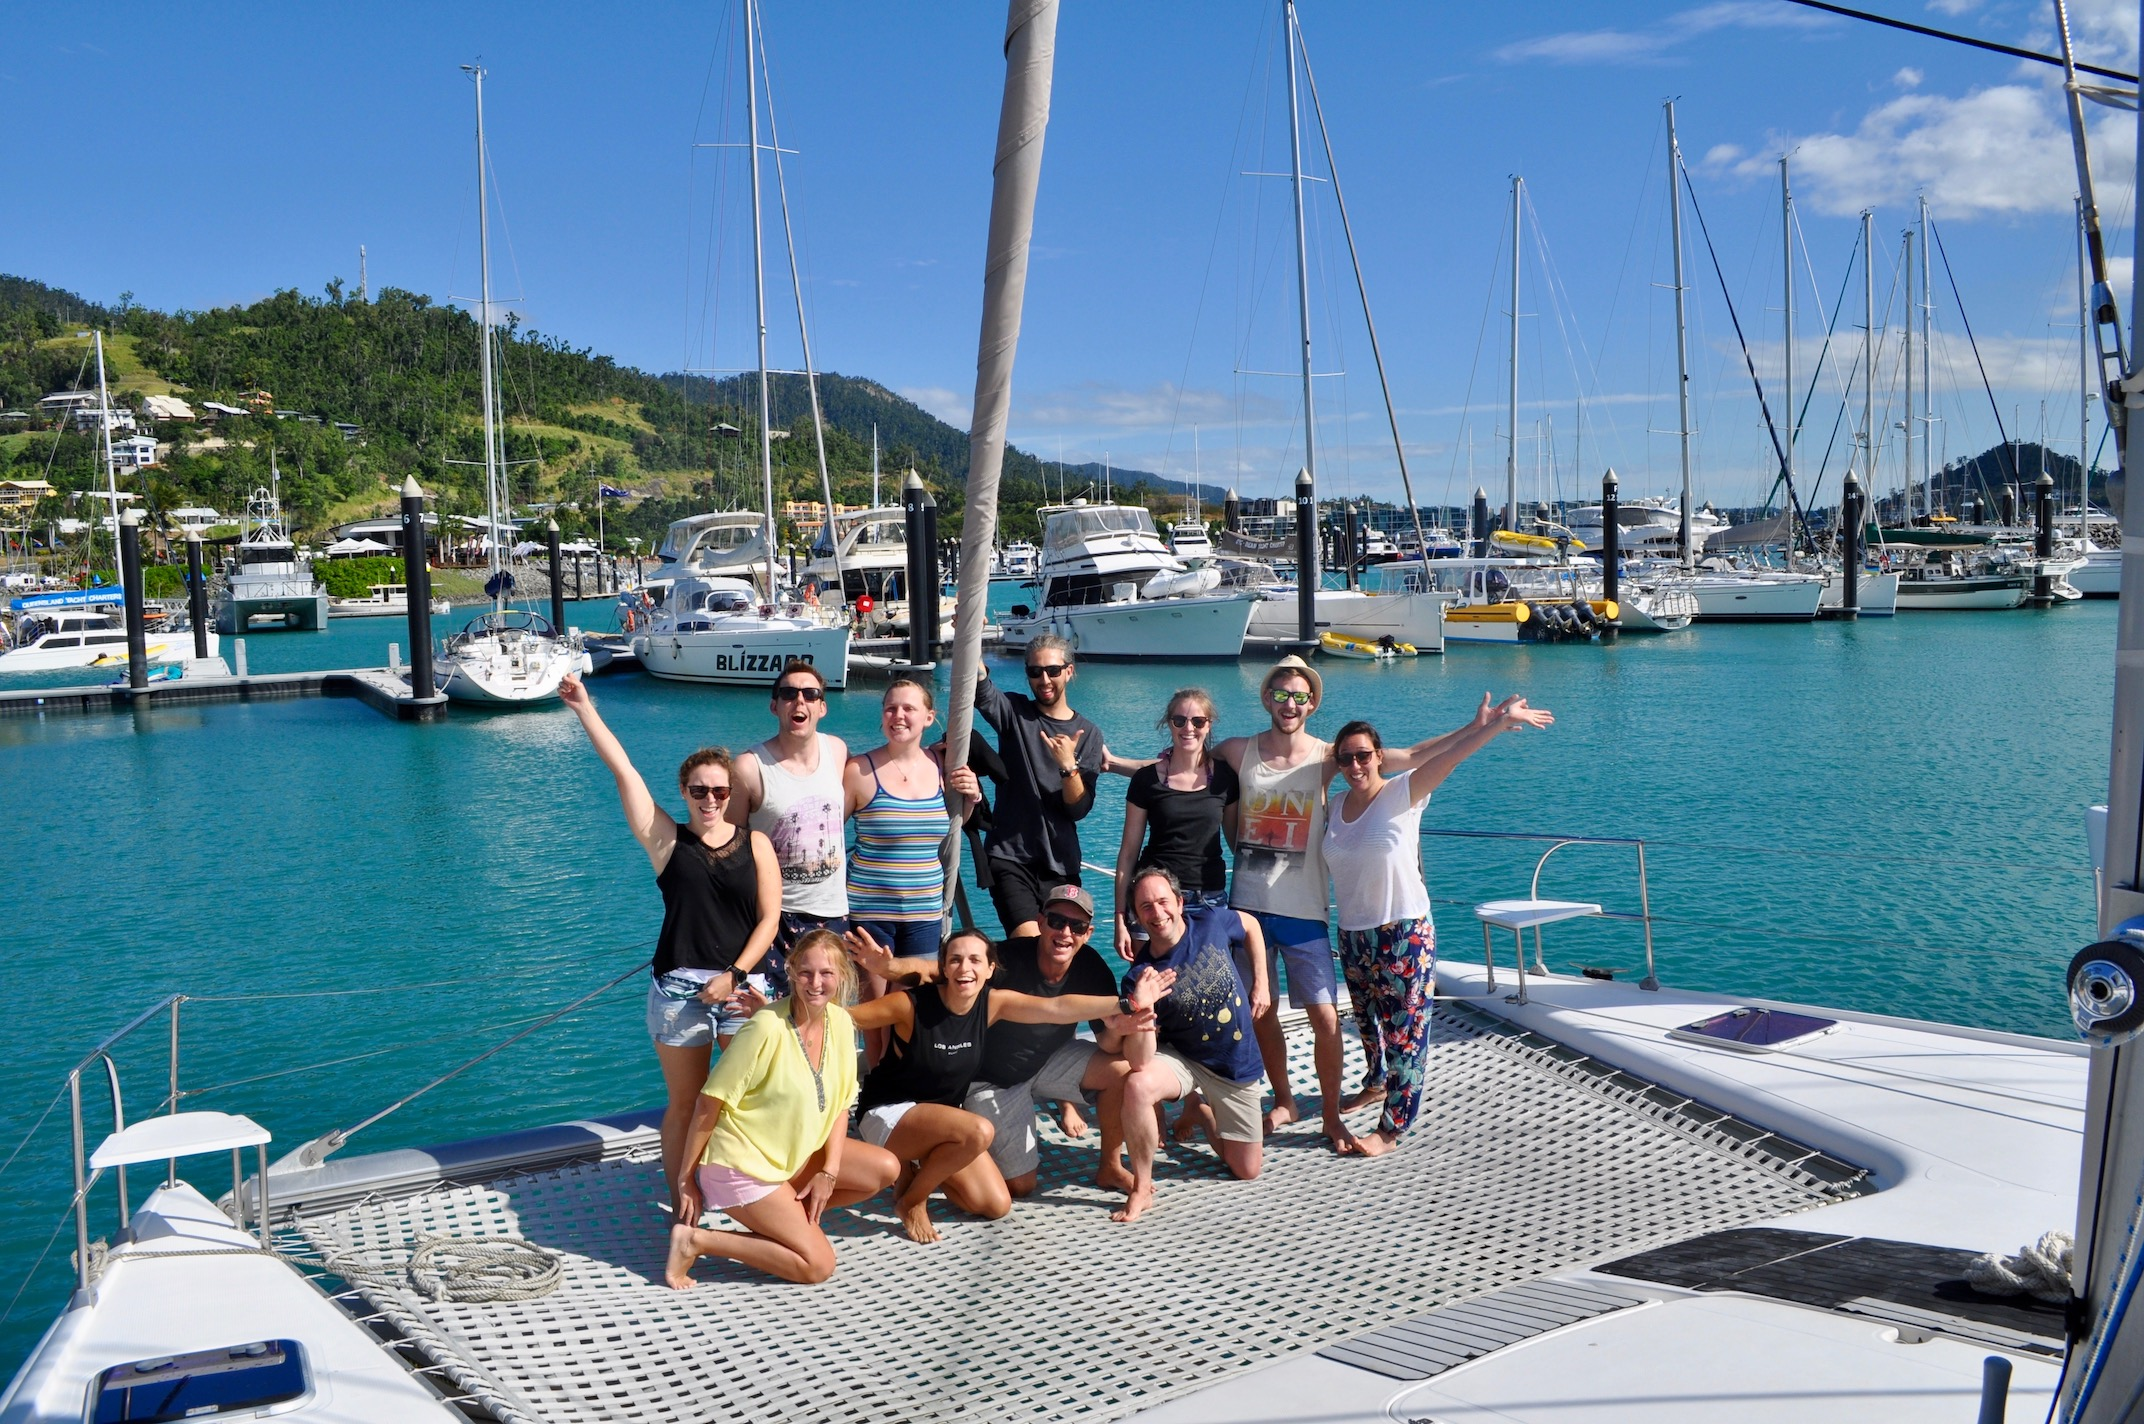 Whitsundays Catamaran Trip 2 days & 2 nights